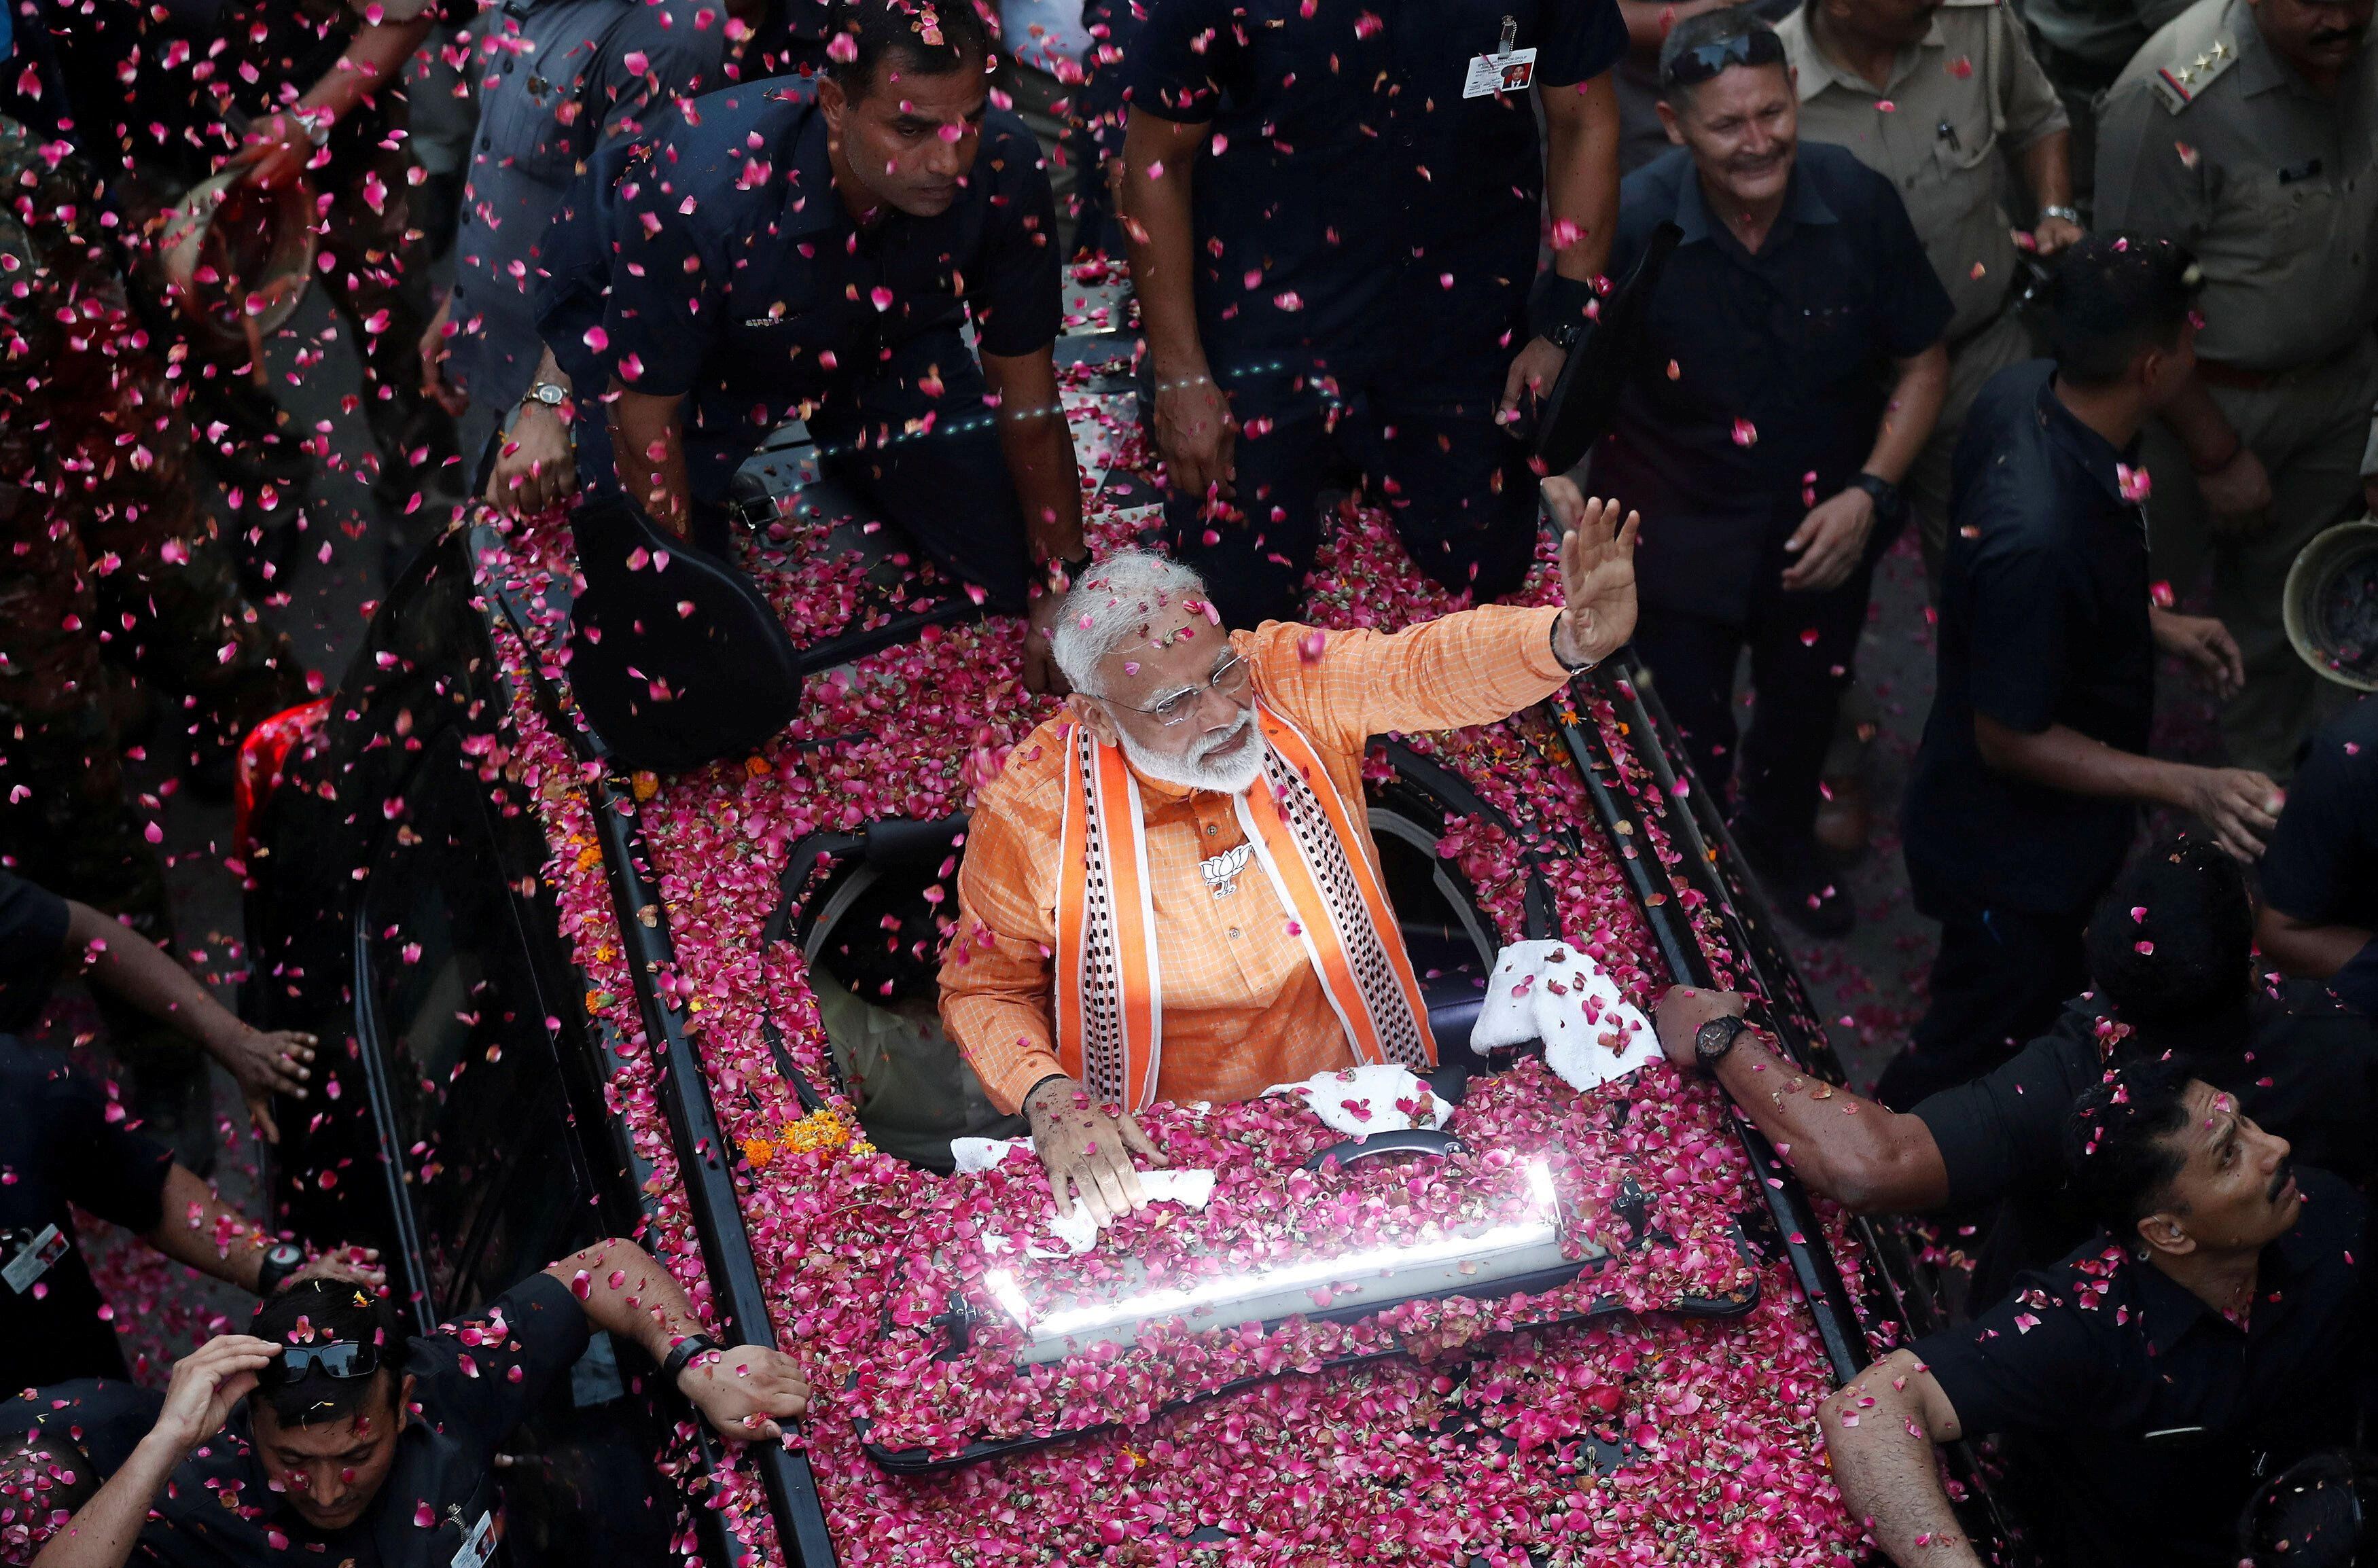 India's Prime Minister Narendra Modi waves towards his supporters during a roadshow in Varanasi, India, April 25, 2019. REUTERS/Adnan Abidi TPX IMAGES OF THE DAY